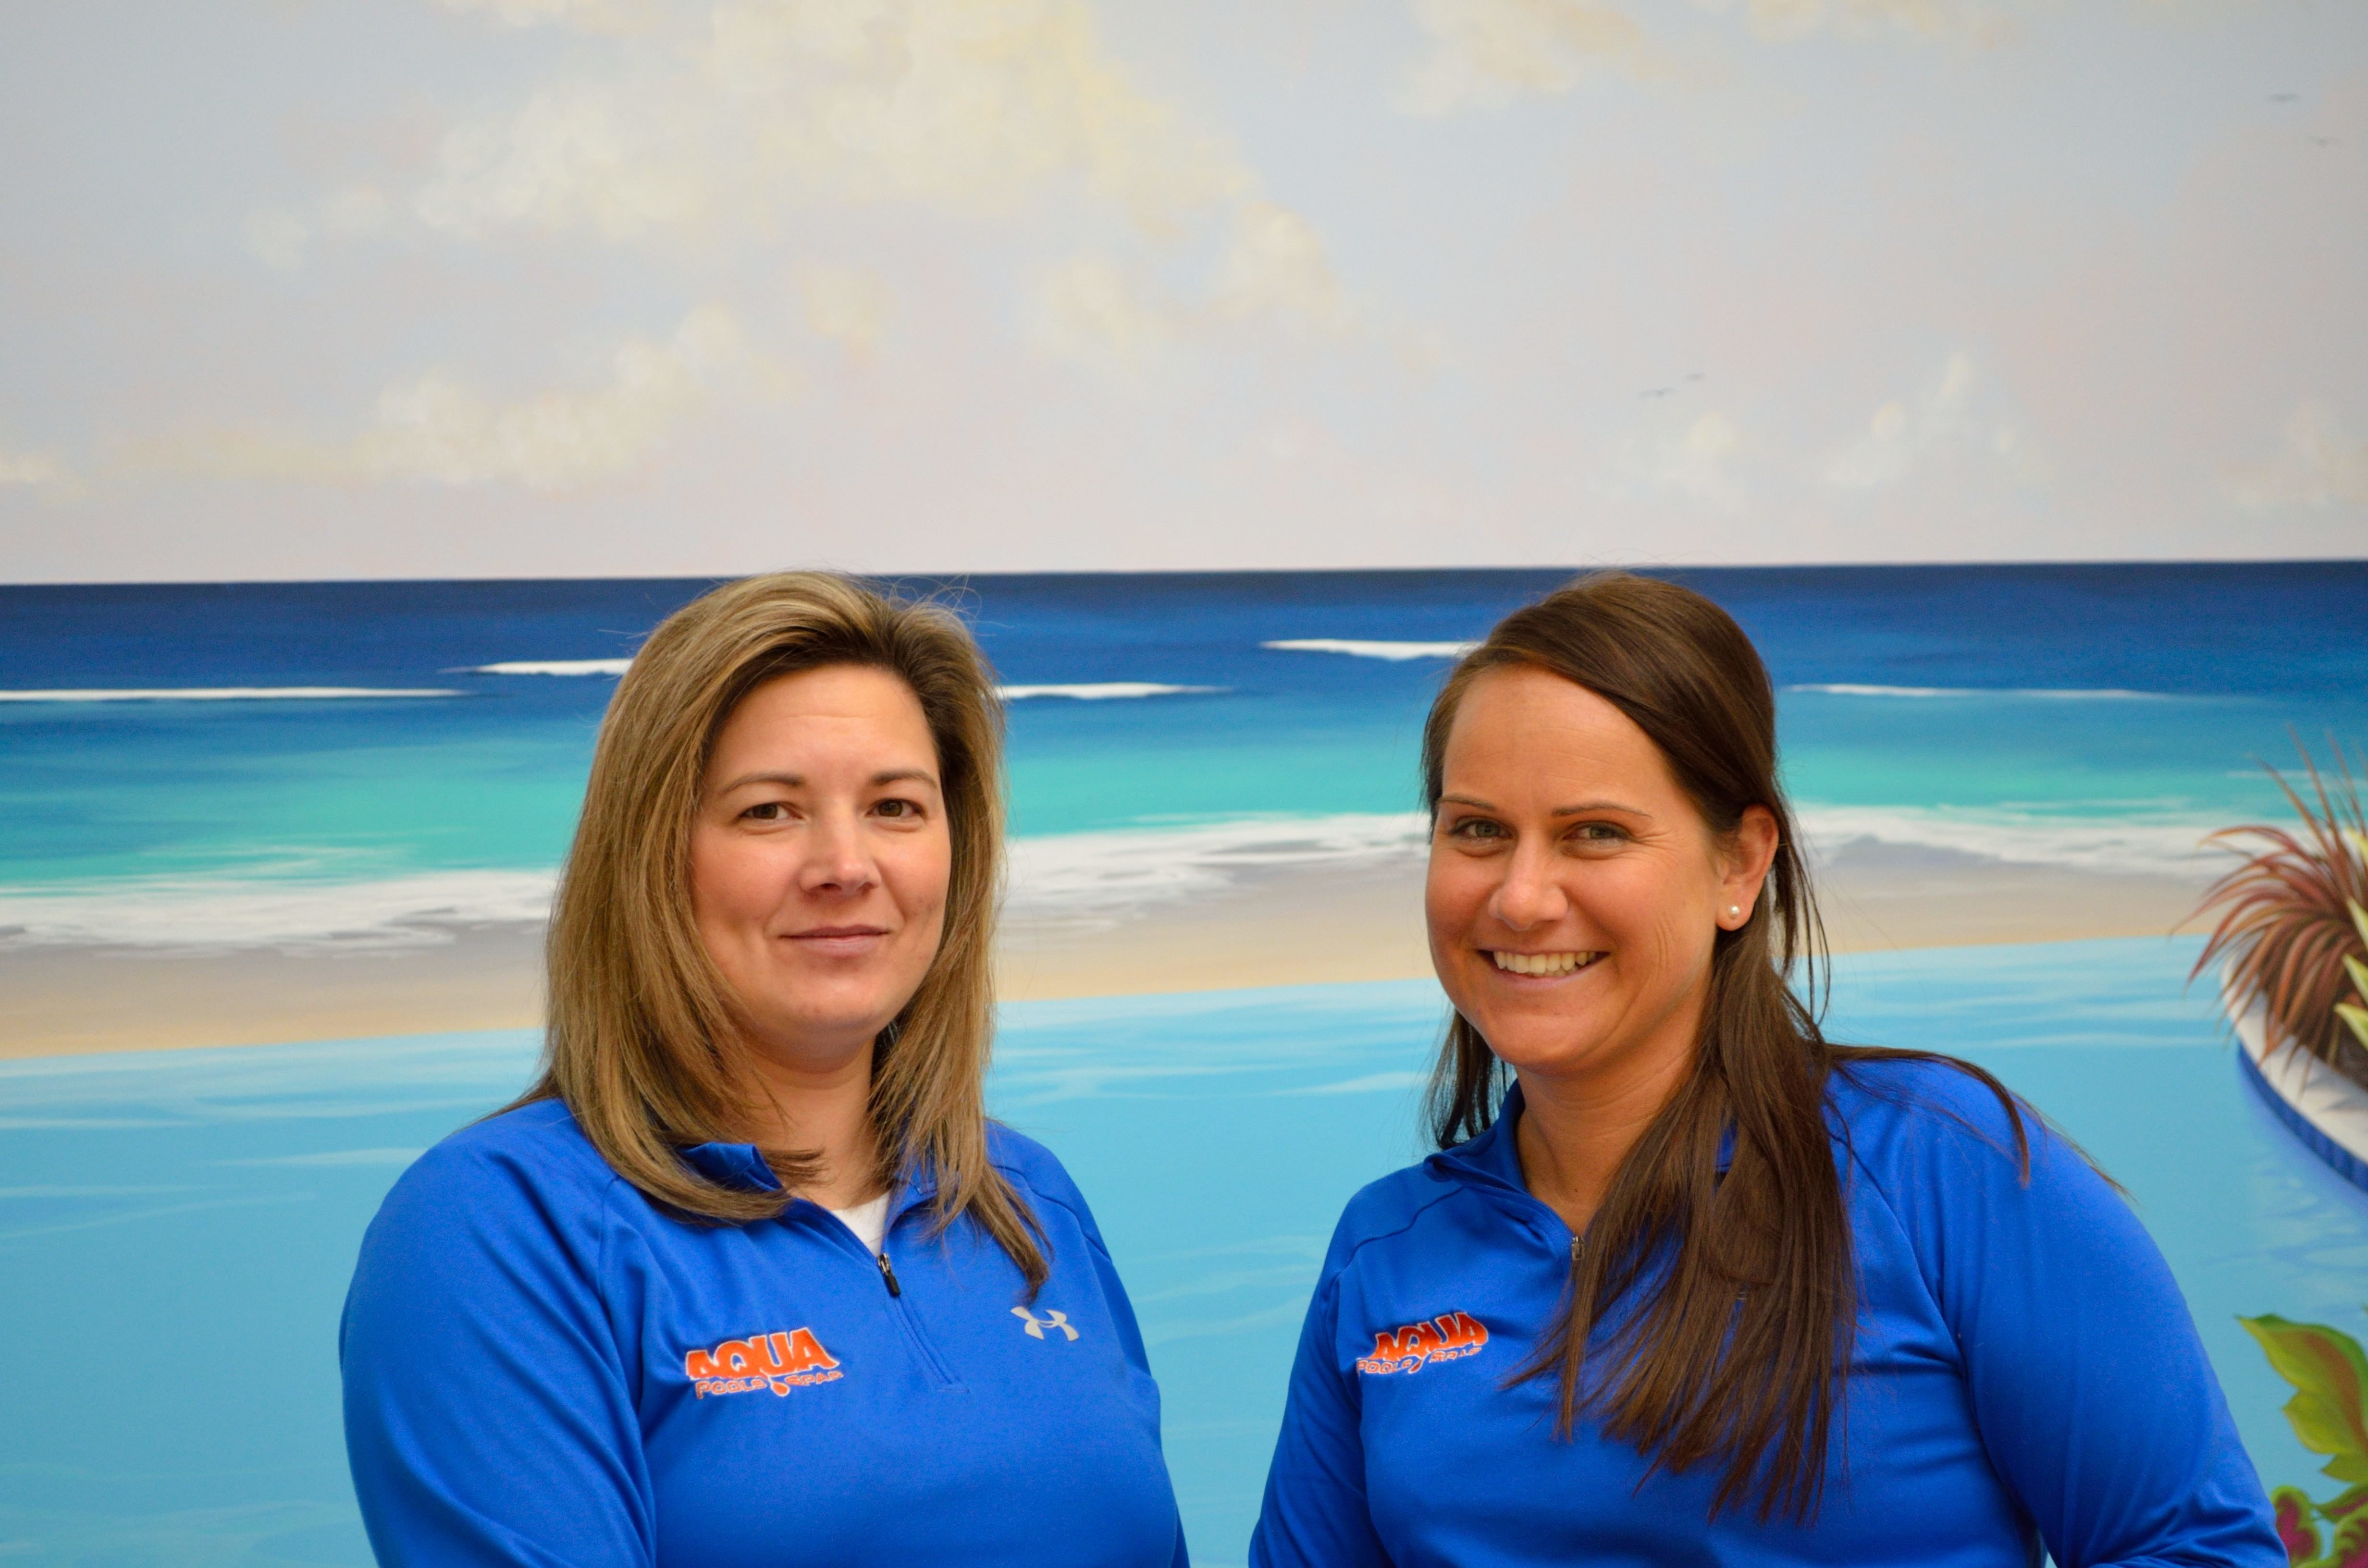 Jennifer & Ashley are here ready to help co-ordinate all your pool & spa service needs!